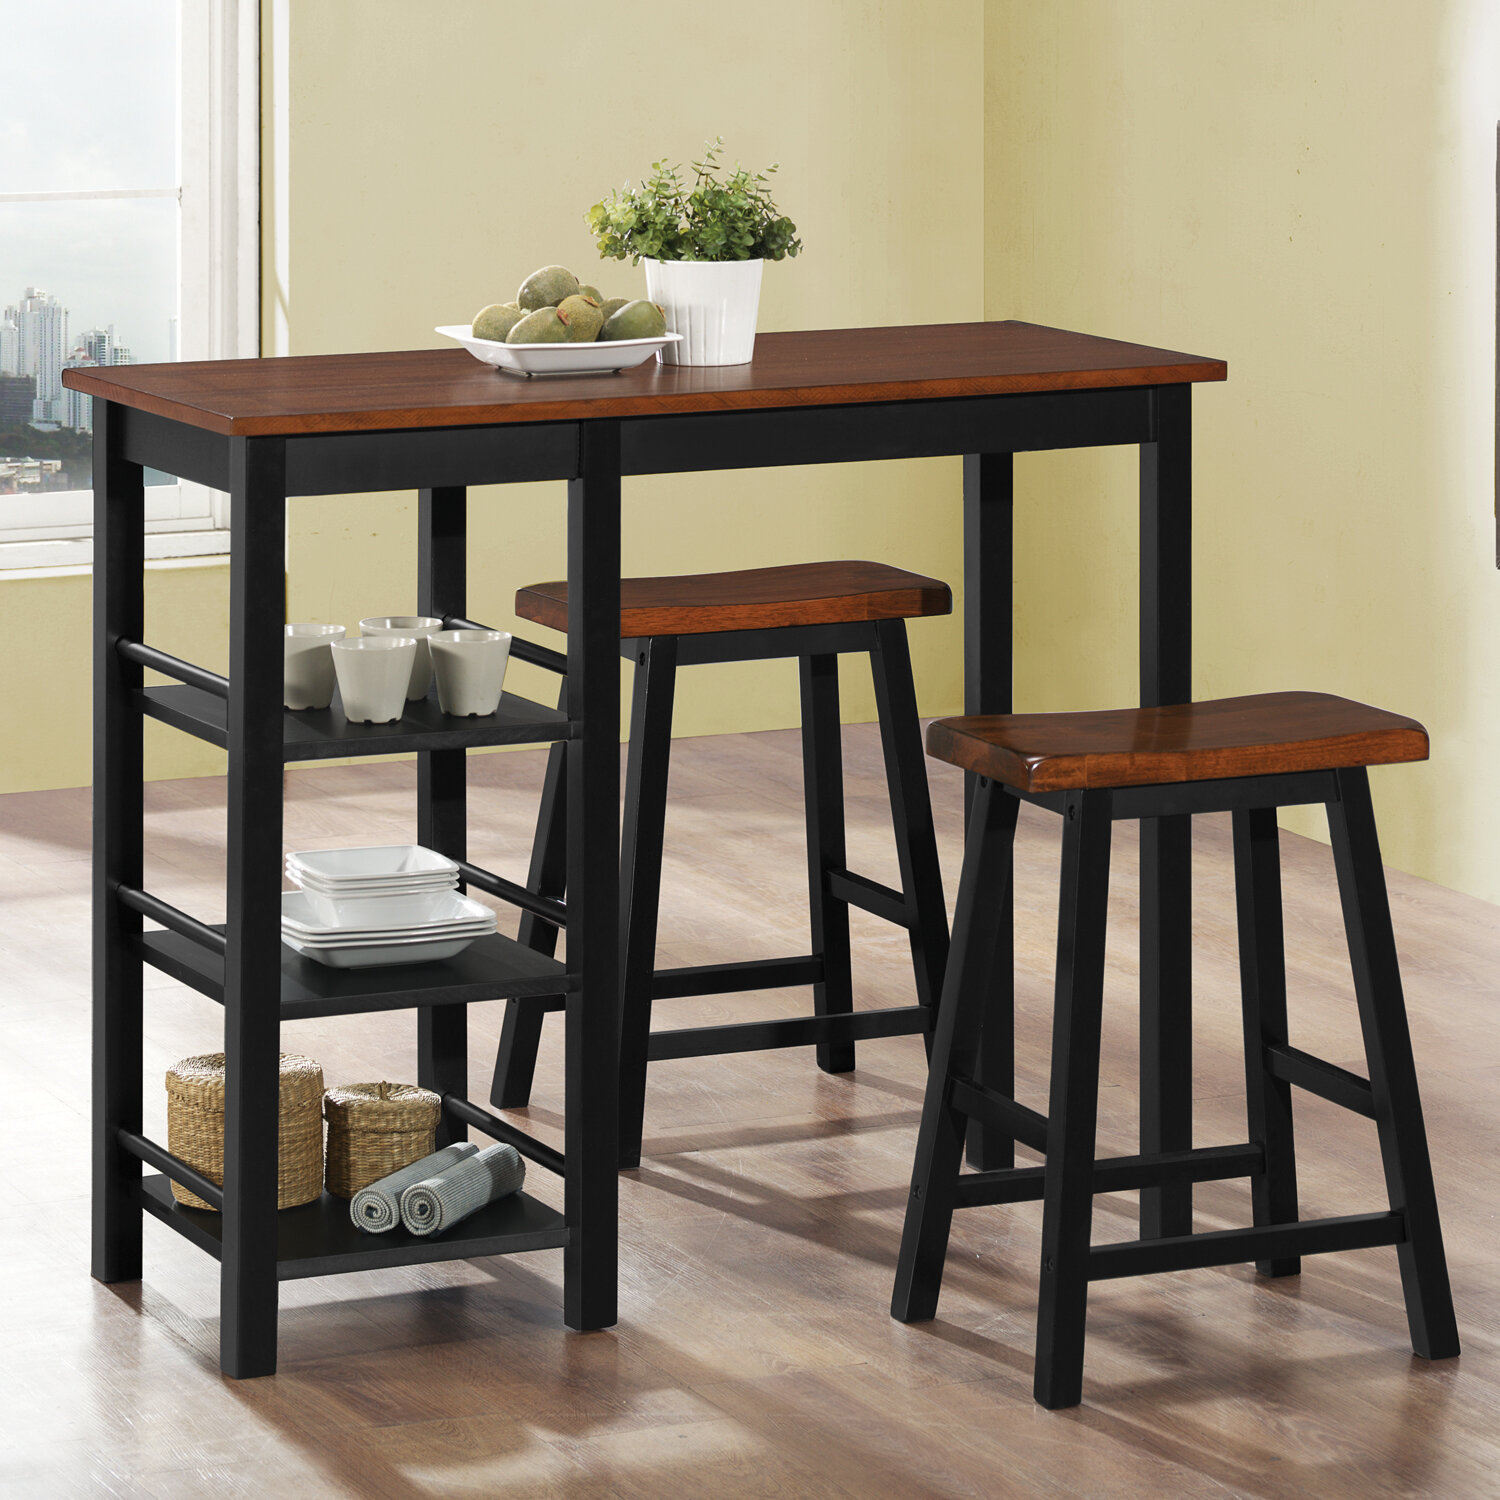 Outstanding Berrios 3 Piece Counter Height Dining Set Ibusinesslaw Wood Chair Design Ideas Ibusinesslaworg